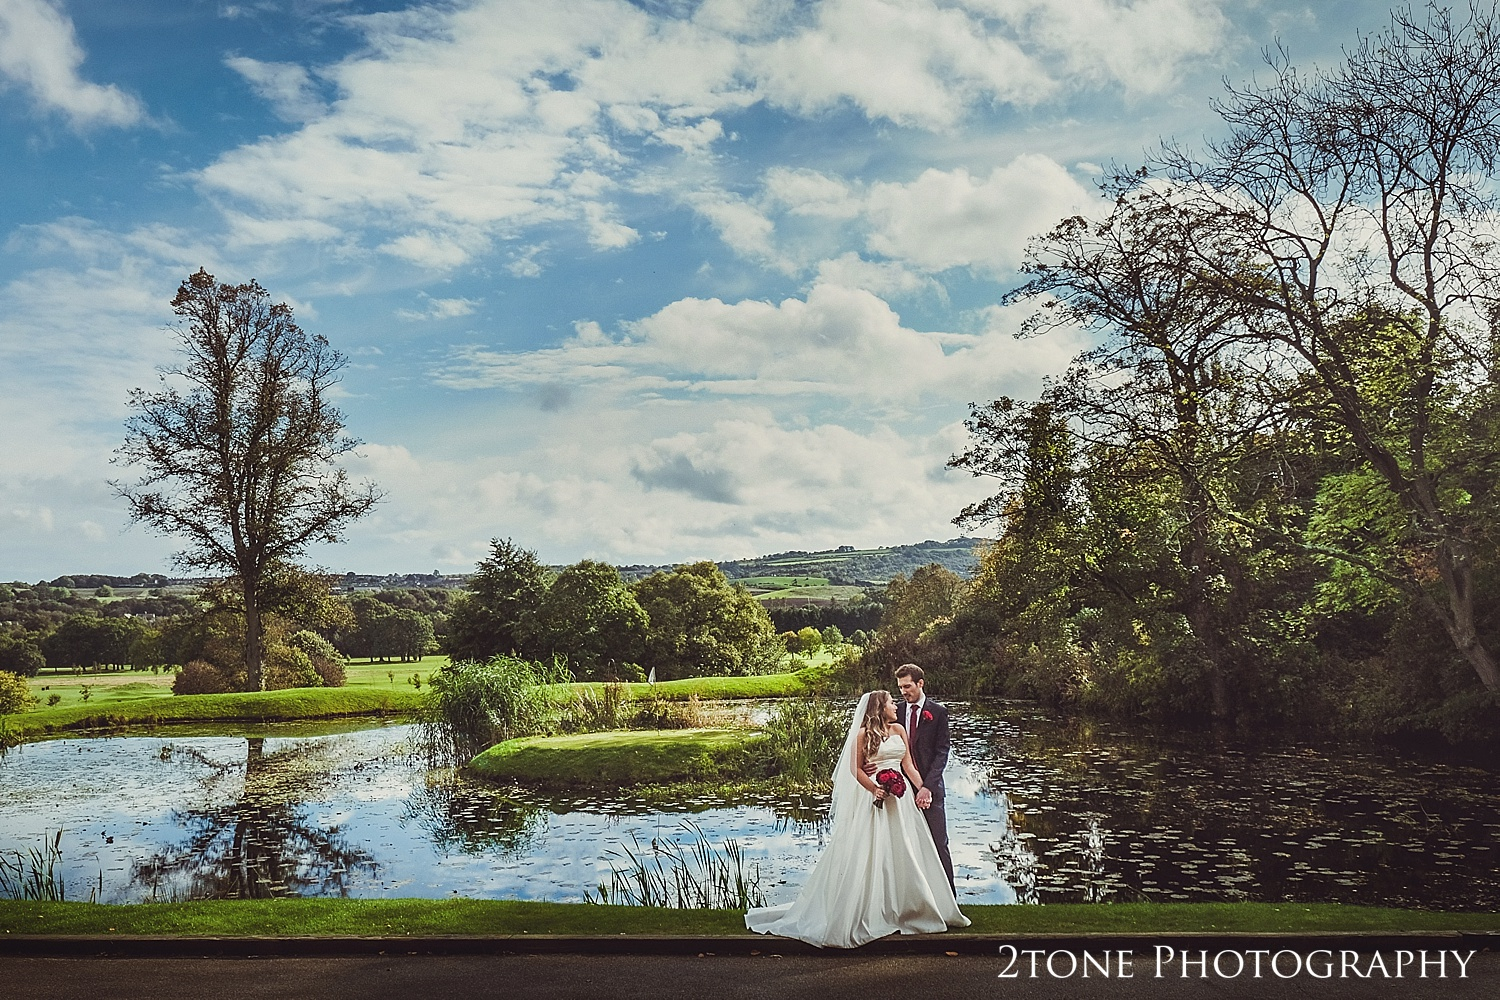 Bride and Groom standing next to a lake.  Wedding photography newcastle, www.2tonephotography.co.uk